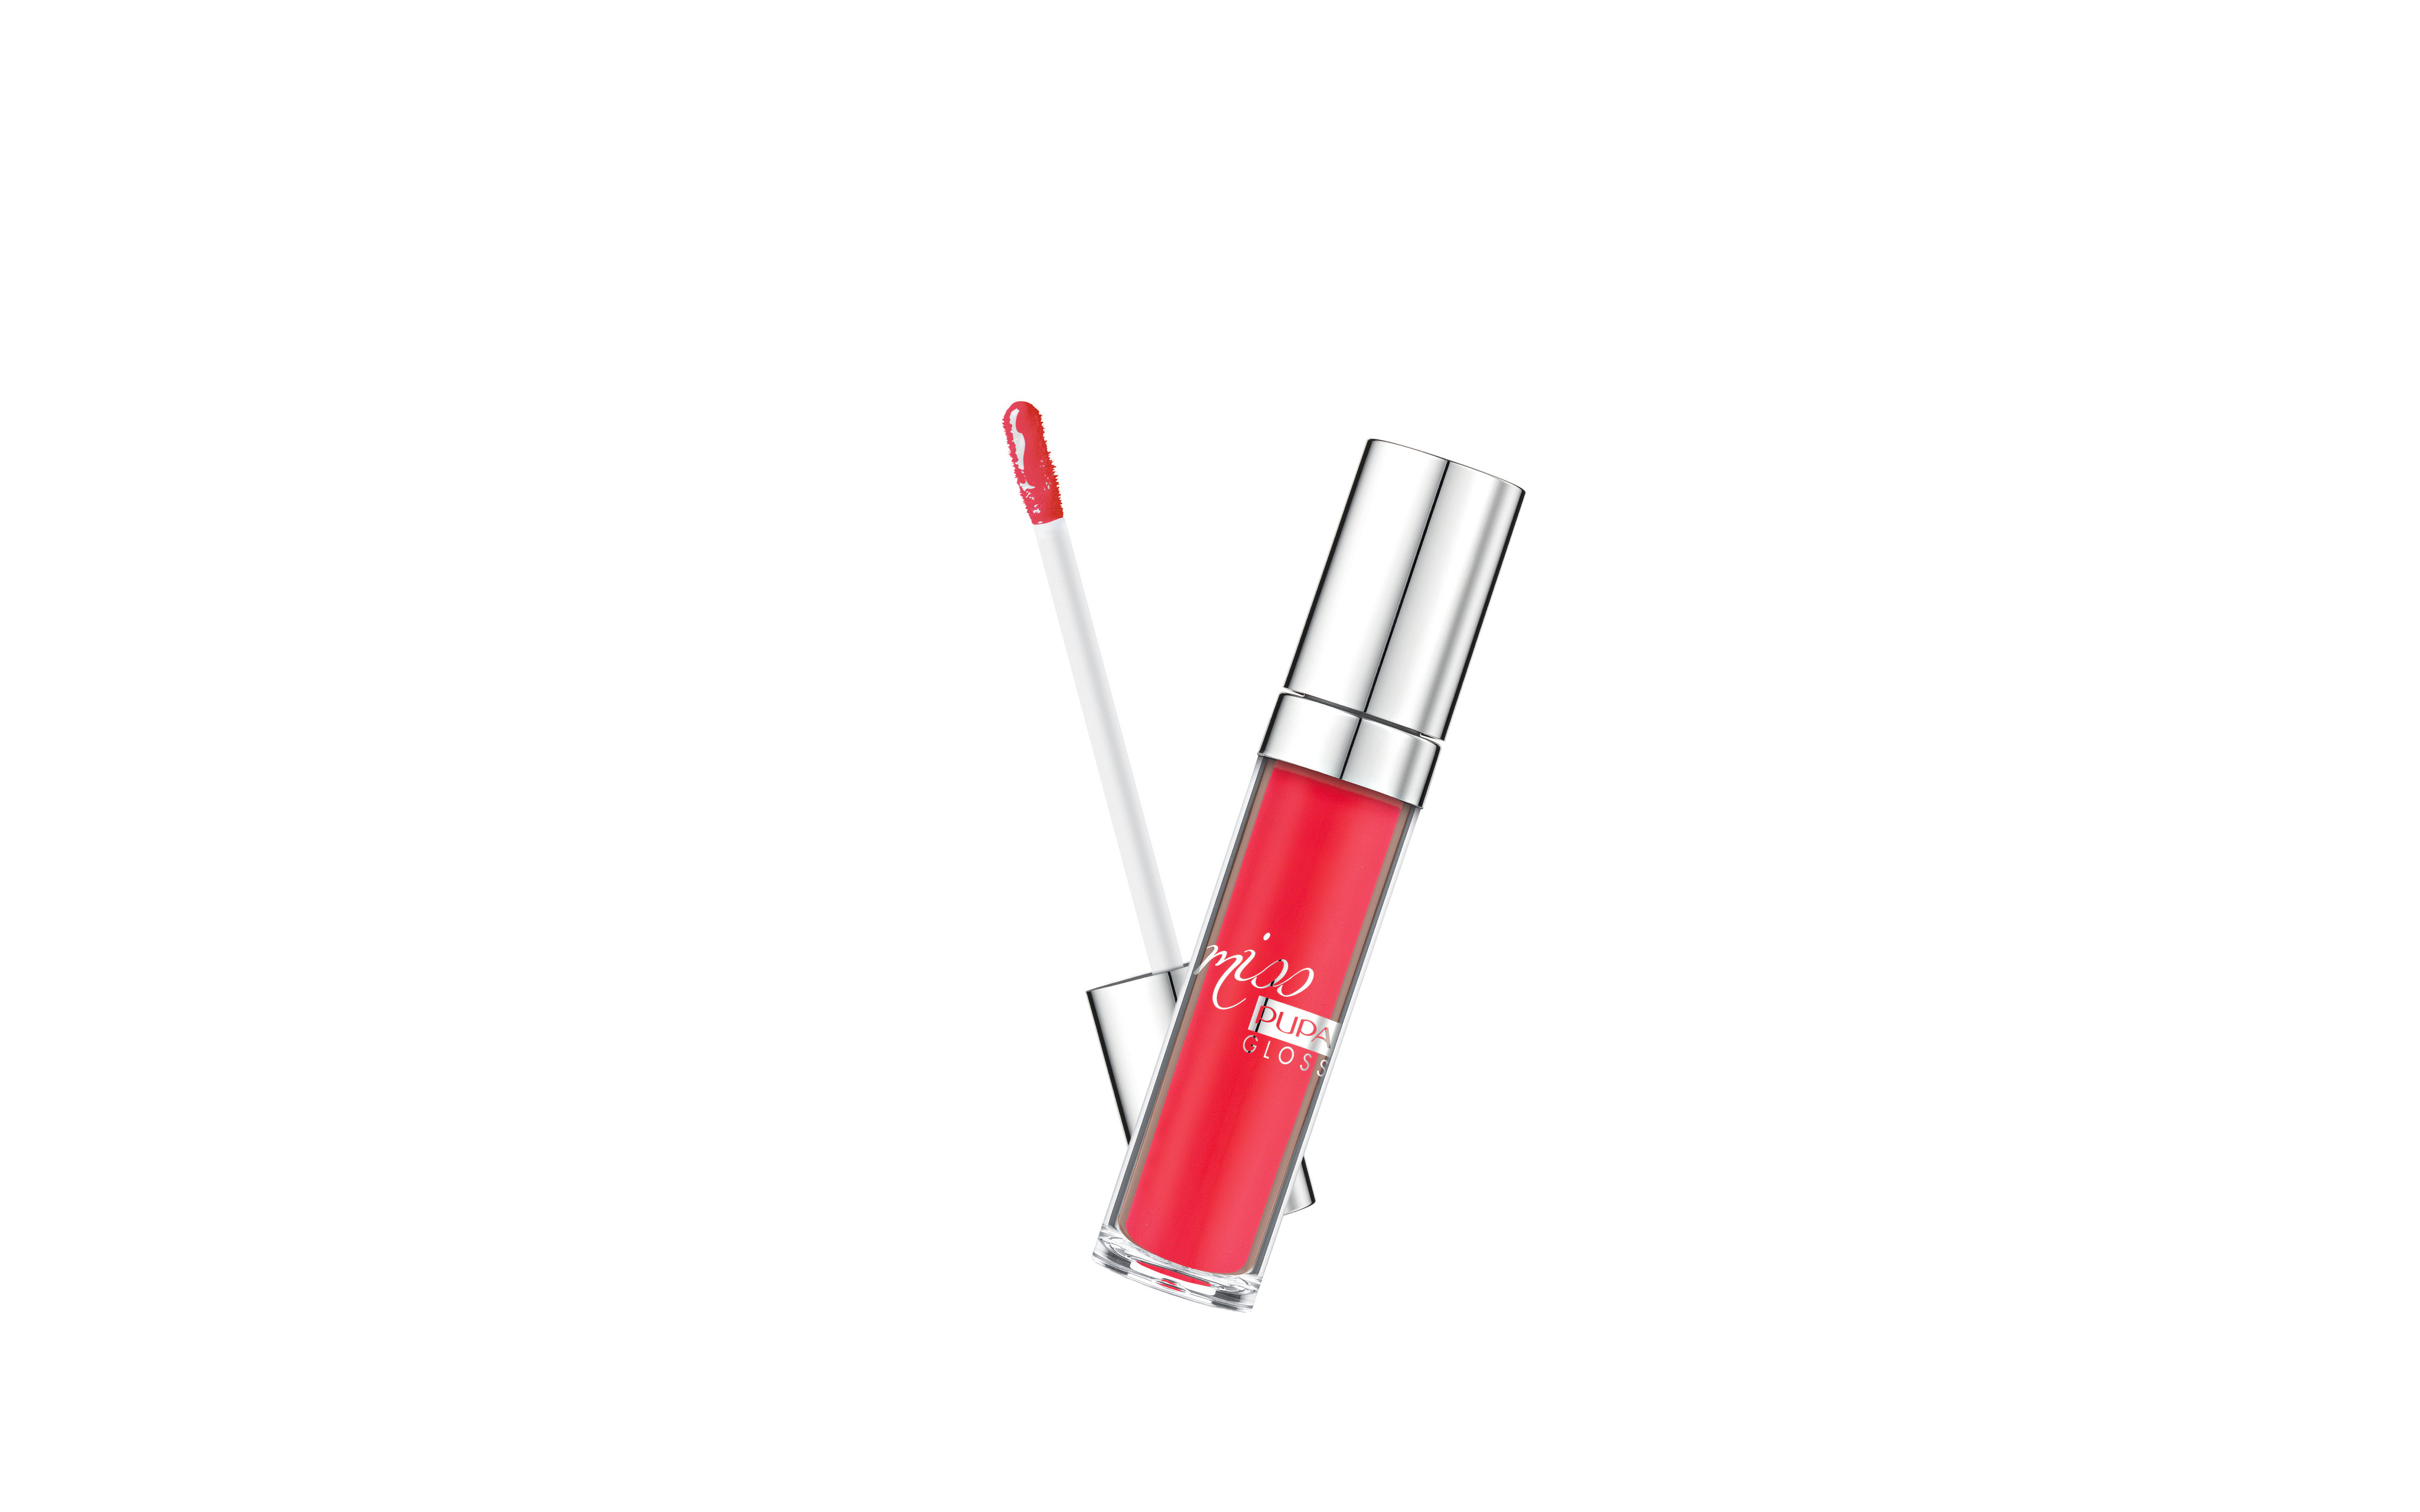 Pupa miss pupa gloss - 204, 204TIMELESS CORAL, large image number 0